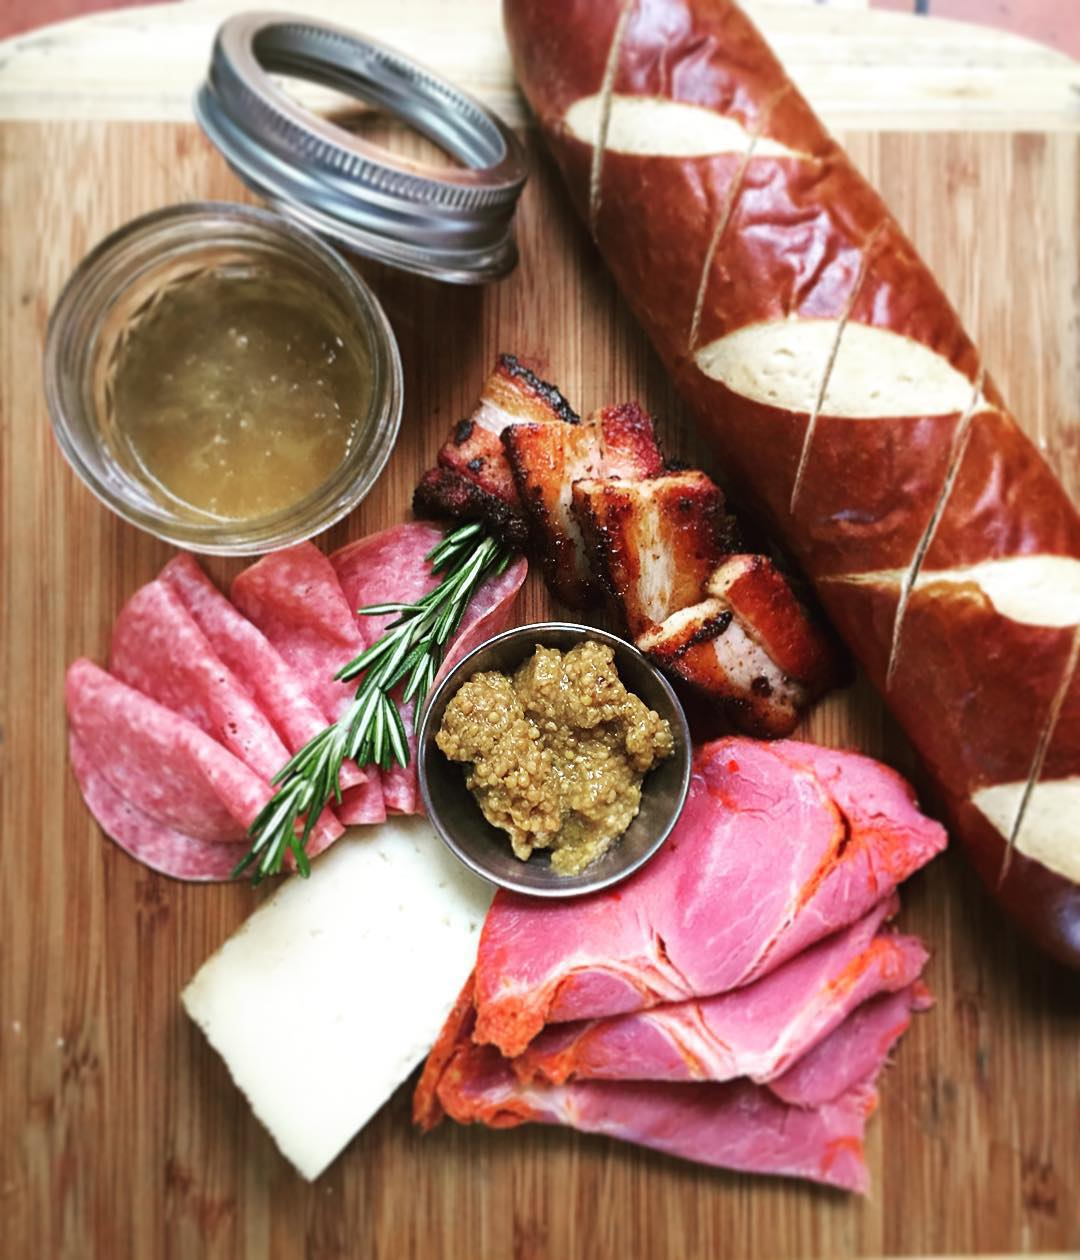 @Hannahsoffthesquare has always had one of our favorite charcuterie boards in town.